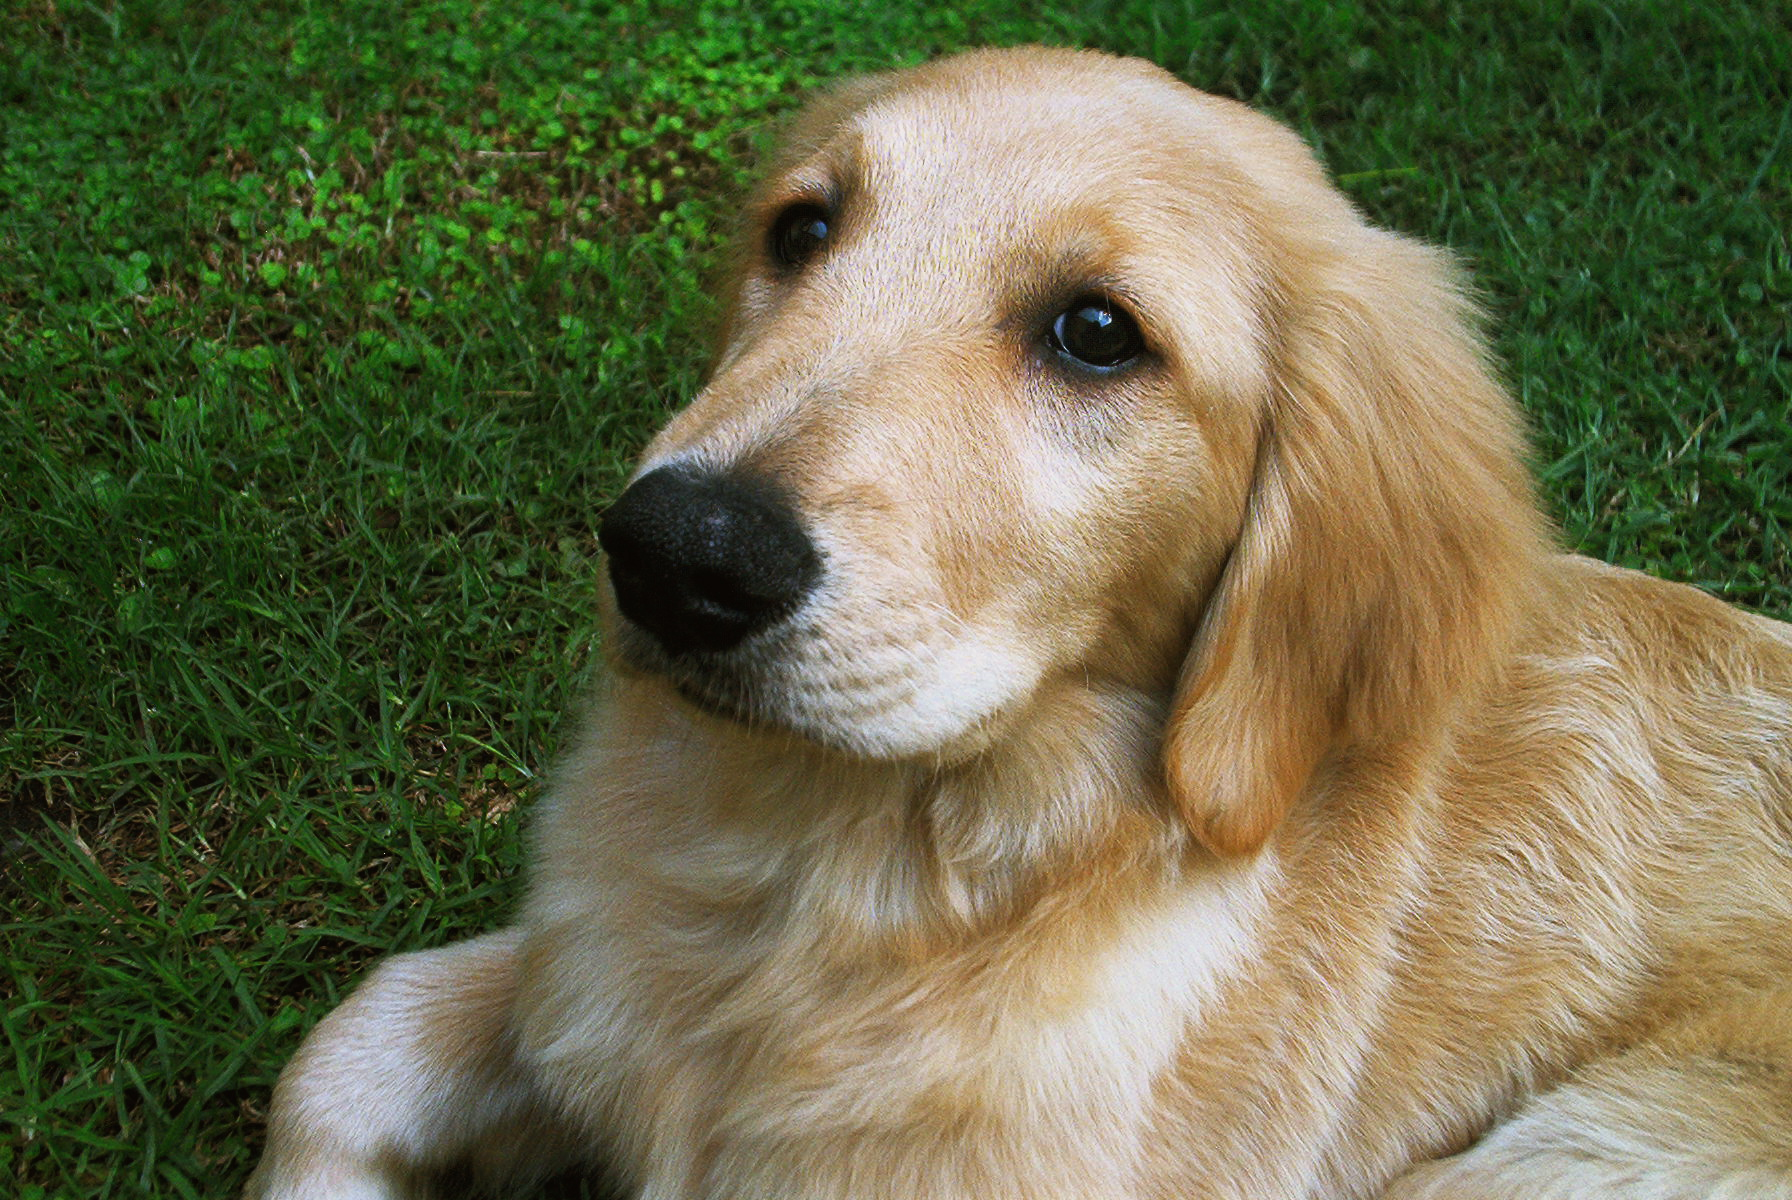 Which President owned a Golden Retriever while serving in the White House?